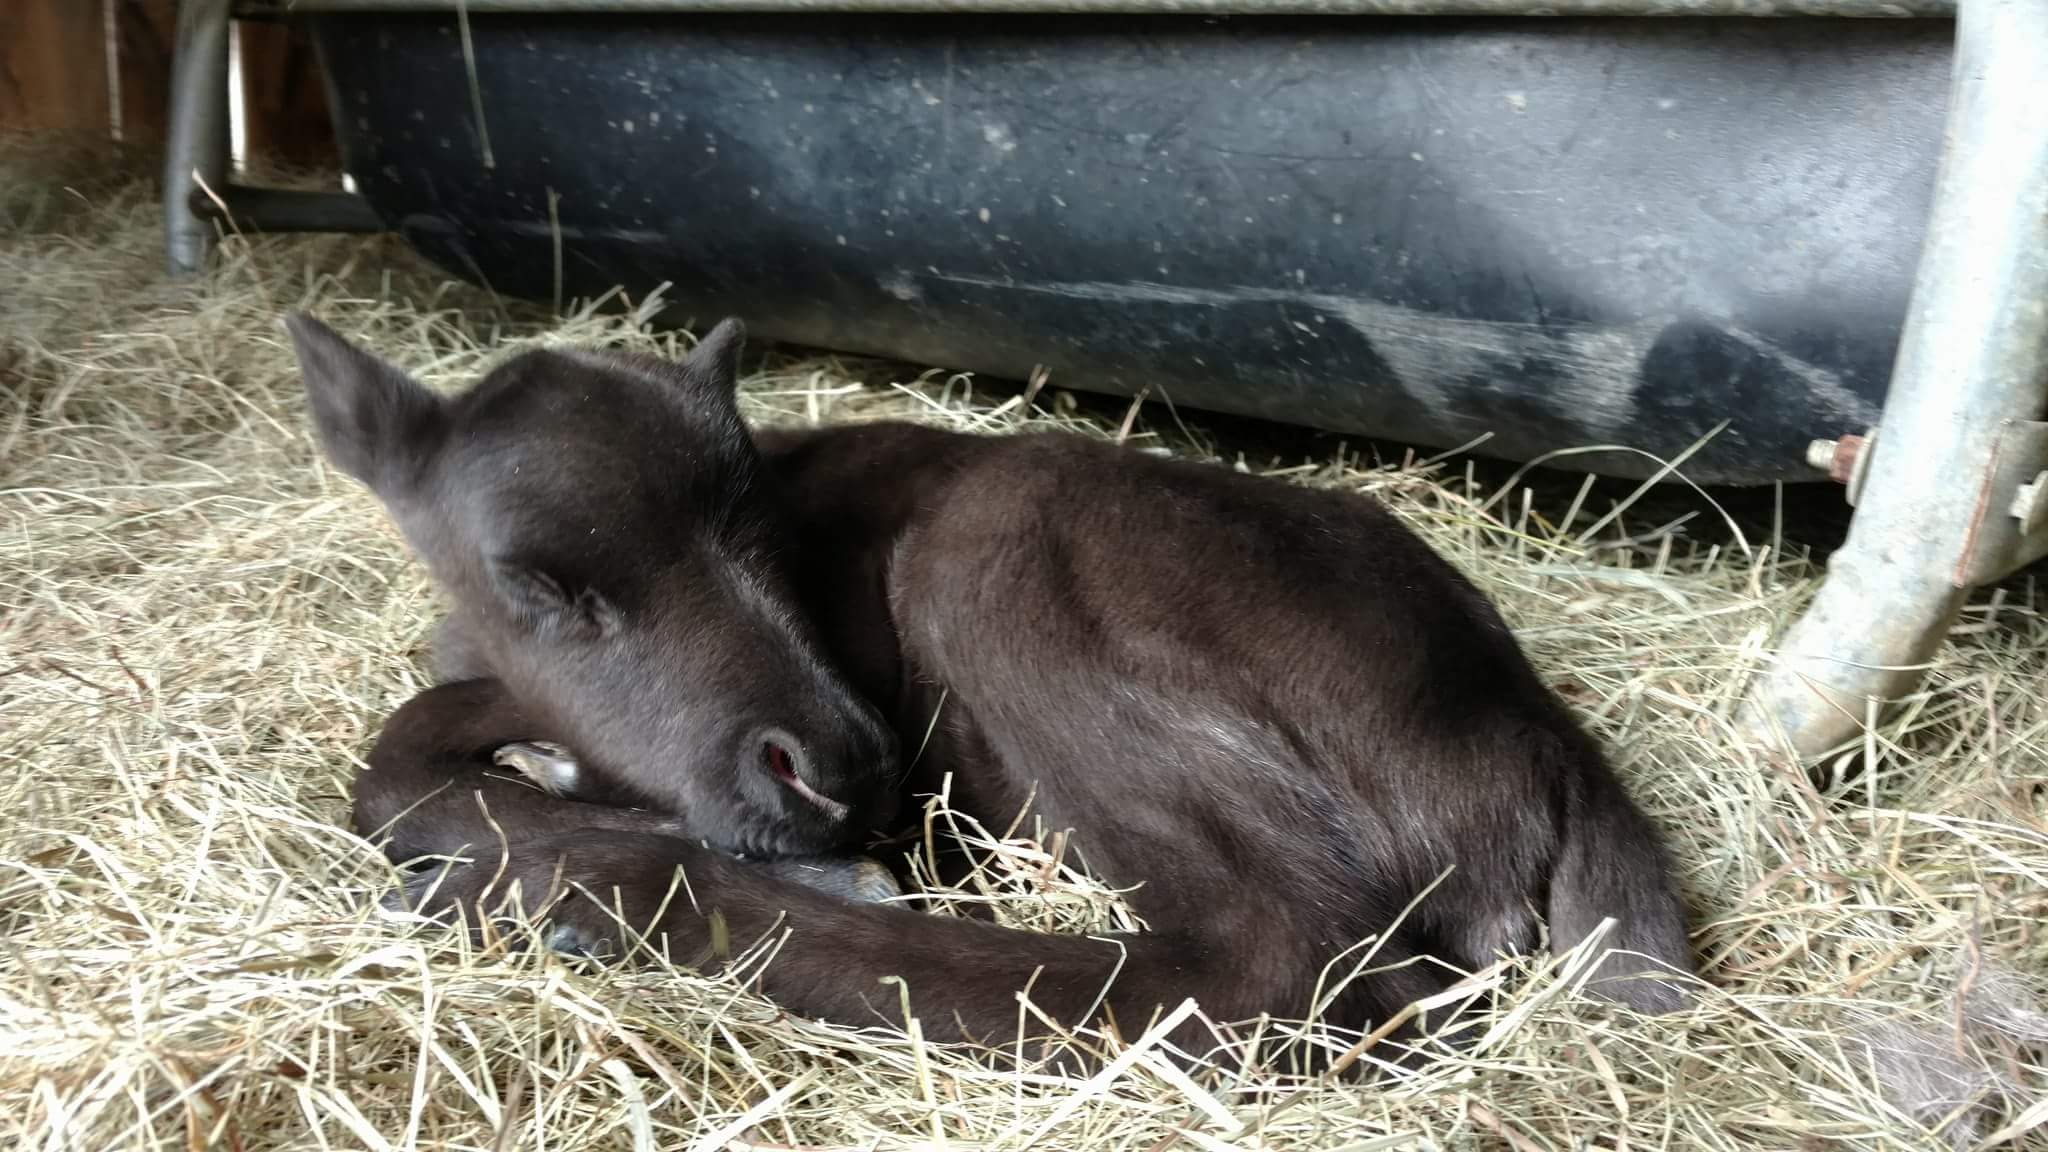 <p>The owner said they have theonly reindeer in the state and Mistletoeis the first reindeer born in Maine in 20 years. (Courtesy: Ed Papsis){&amp;nbsp;}</p>